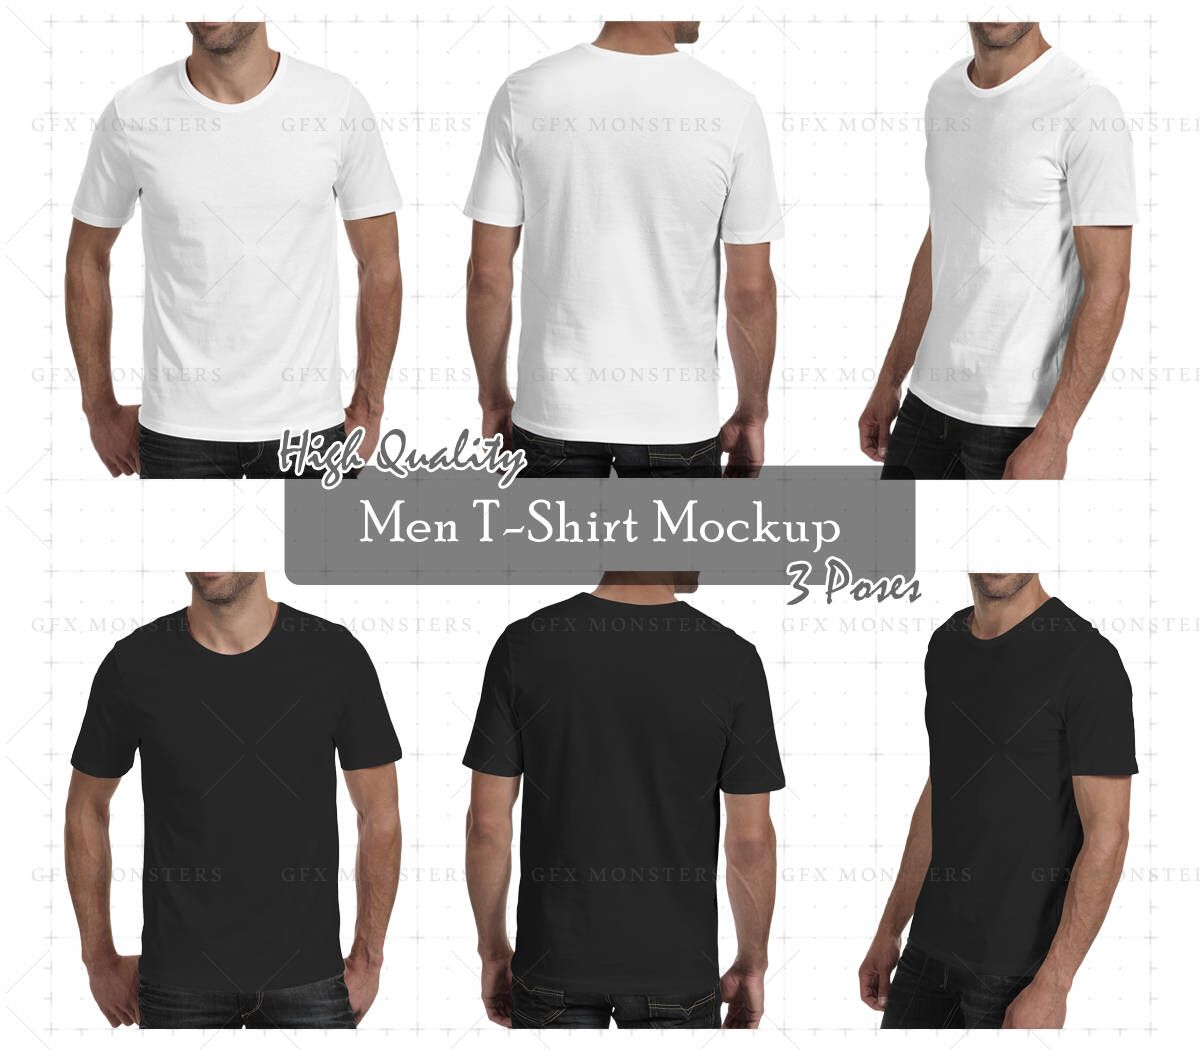 Download Men T Shirt Mockup Psd Front Back Perspective Png Psd Apparel Mock Up High Resolution Mock Up Instant Download In 2021 Clothing Mockup Tshirt Mockup Shirt Mockup